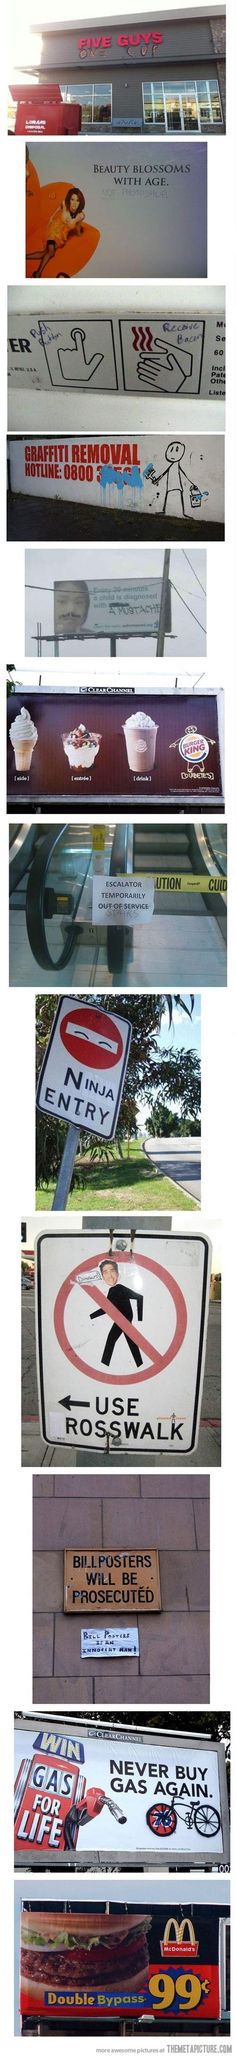 Signs improved by graffiti